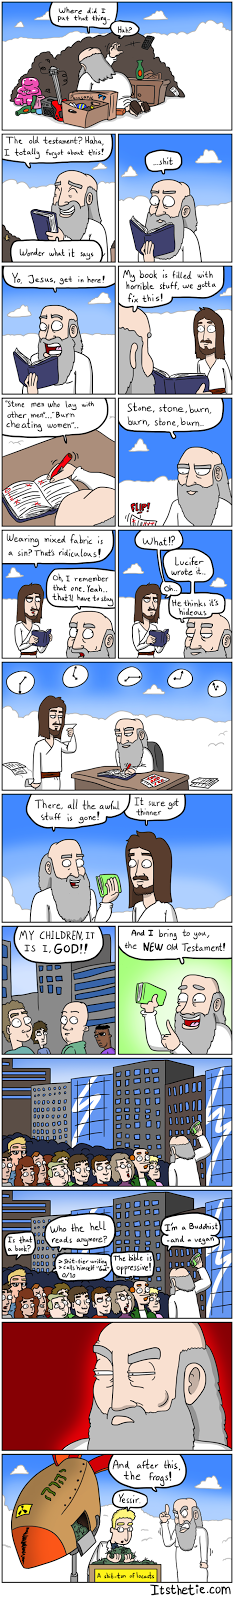 A comic about god rewriting the testaments